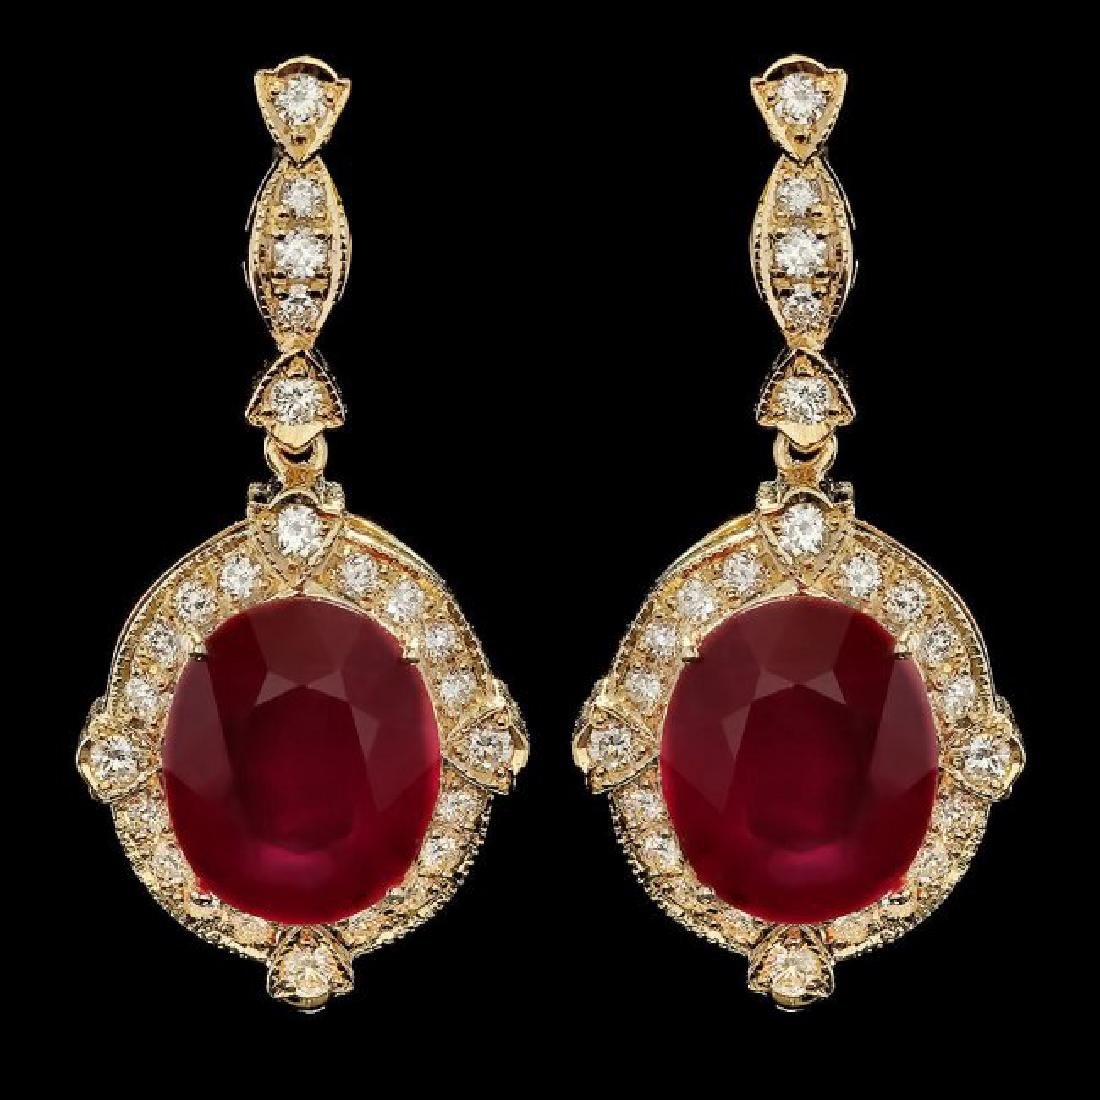 14k Gold 22.50ct Ruby 1.70ct Diamond Earrings